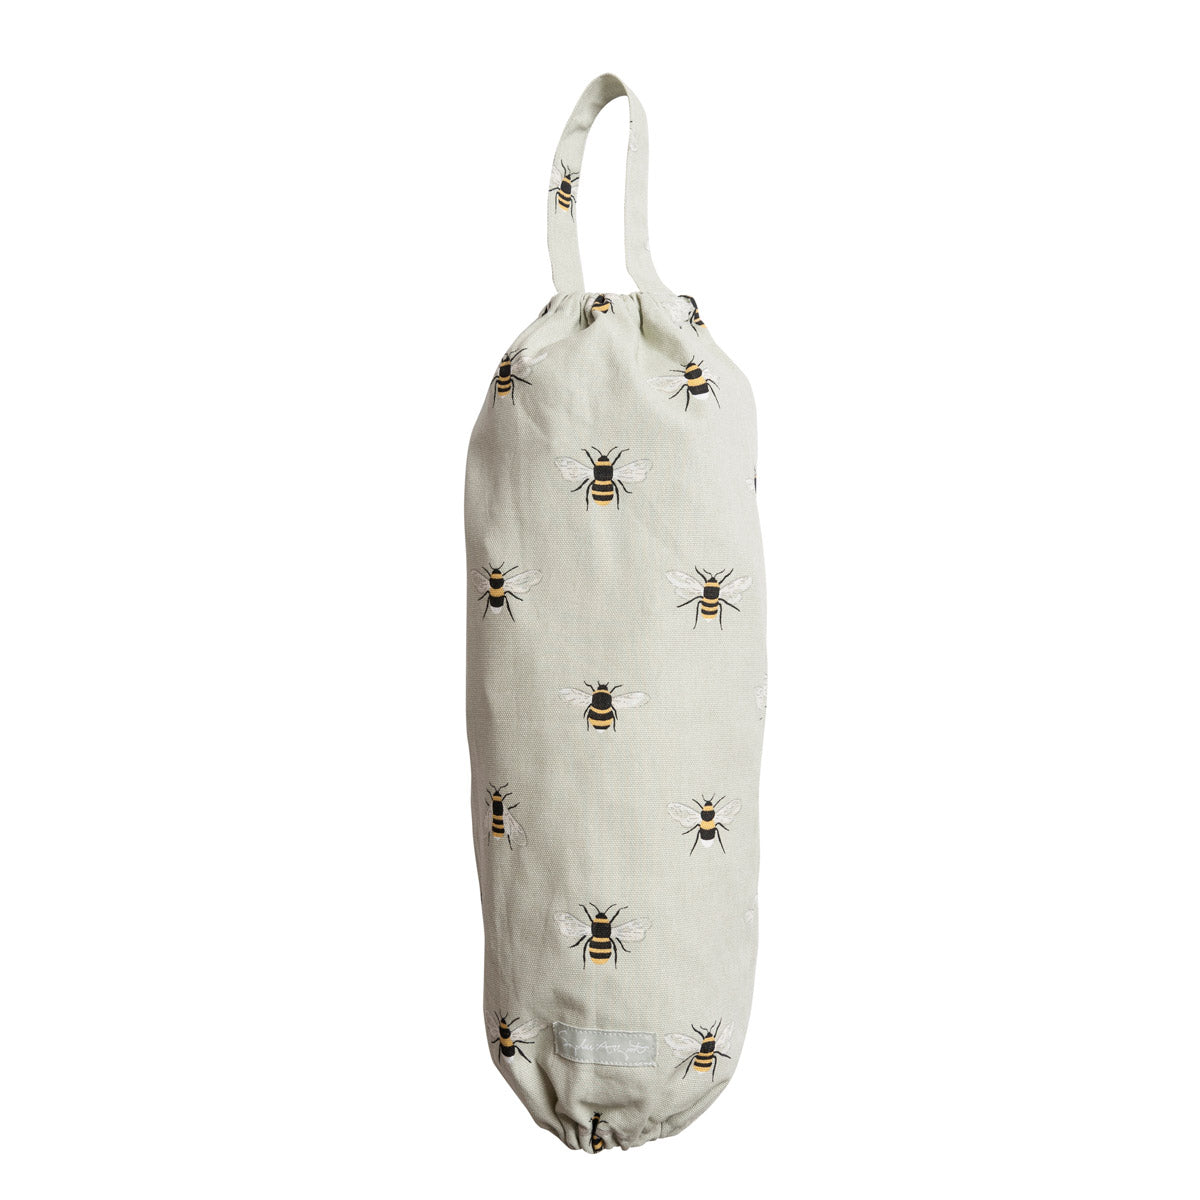 Bees Carrier Bag Holder